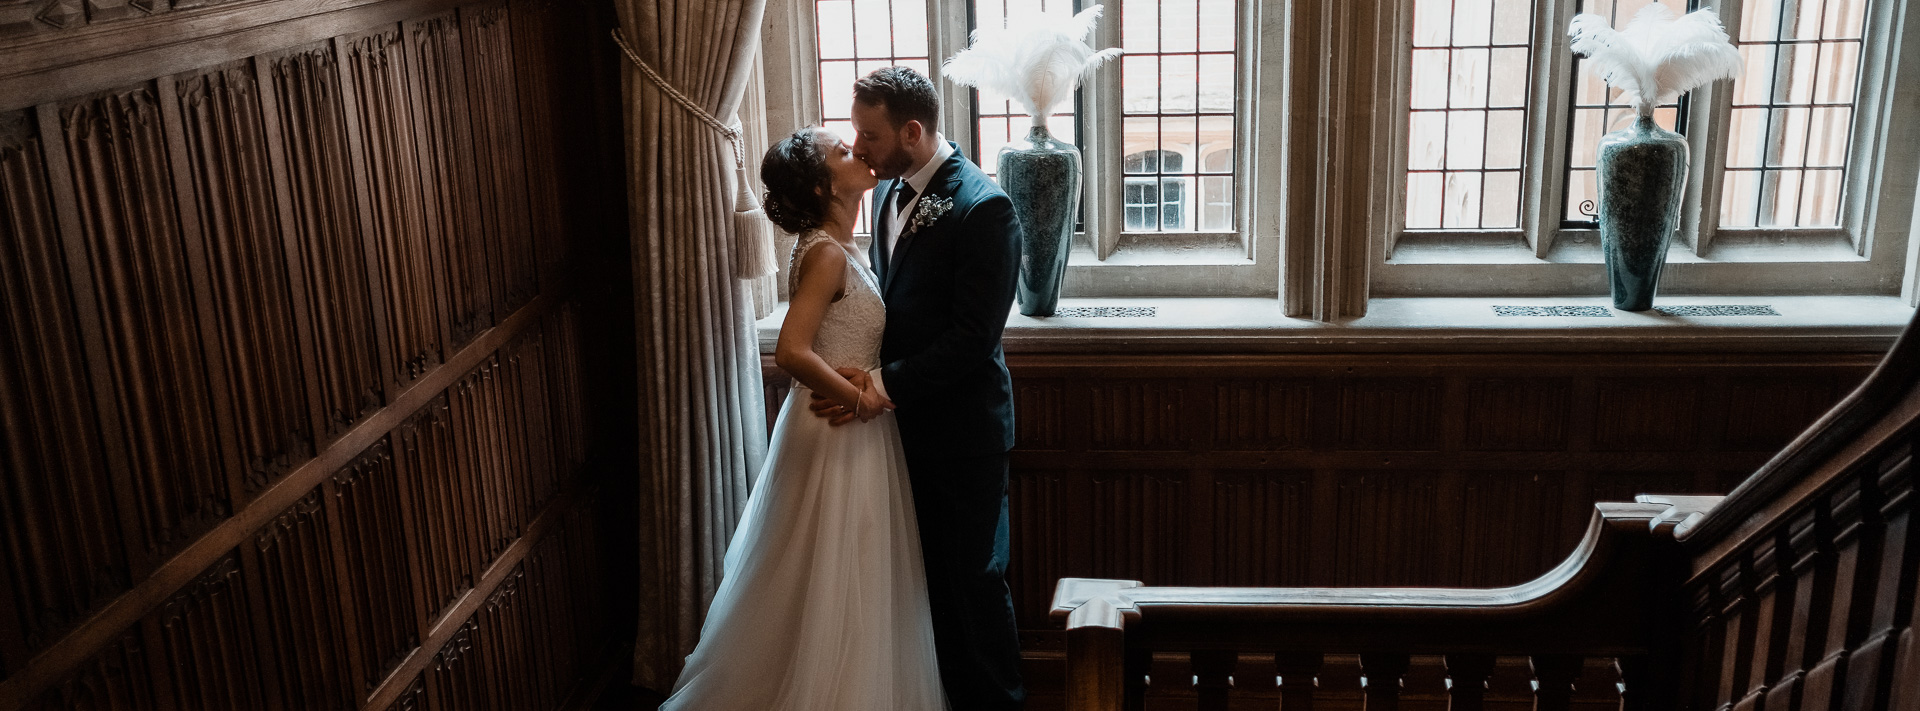 Laura and Oliver's Wedding at Lanwades Hall